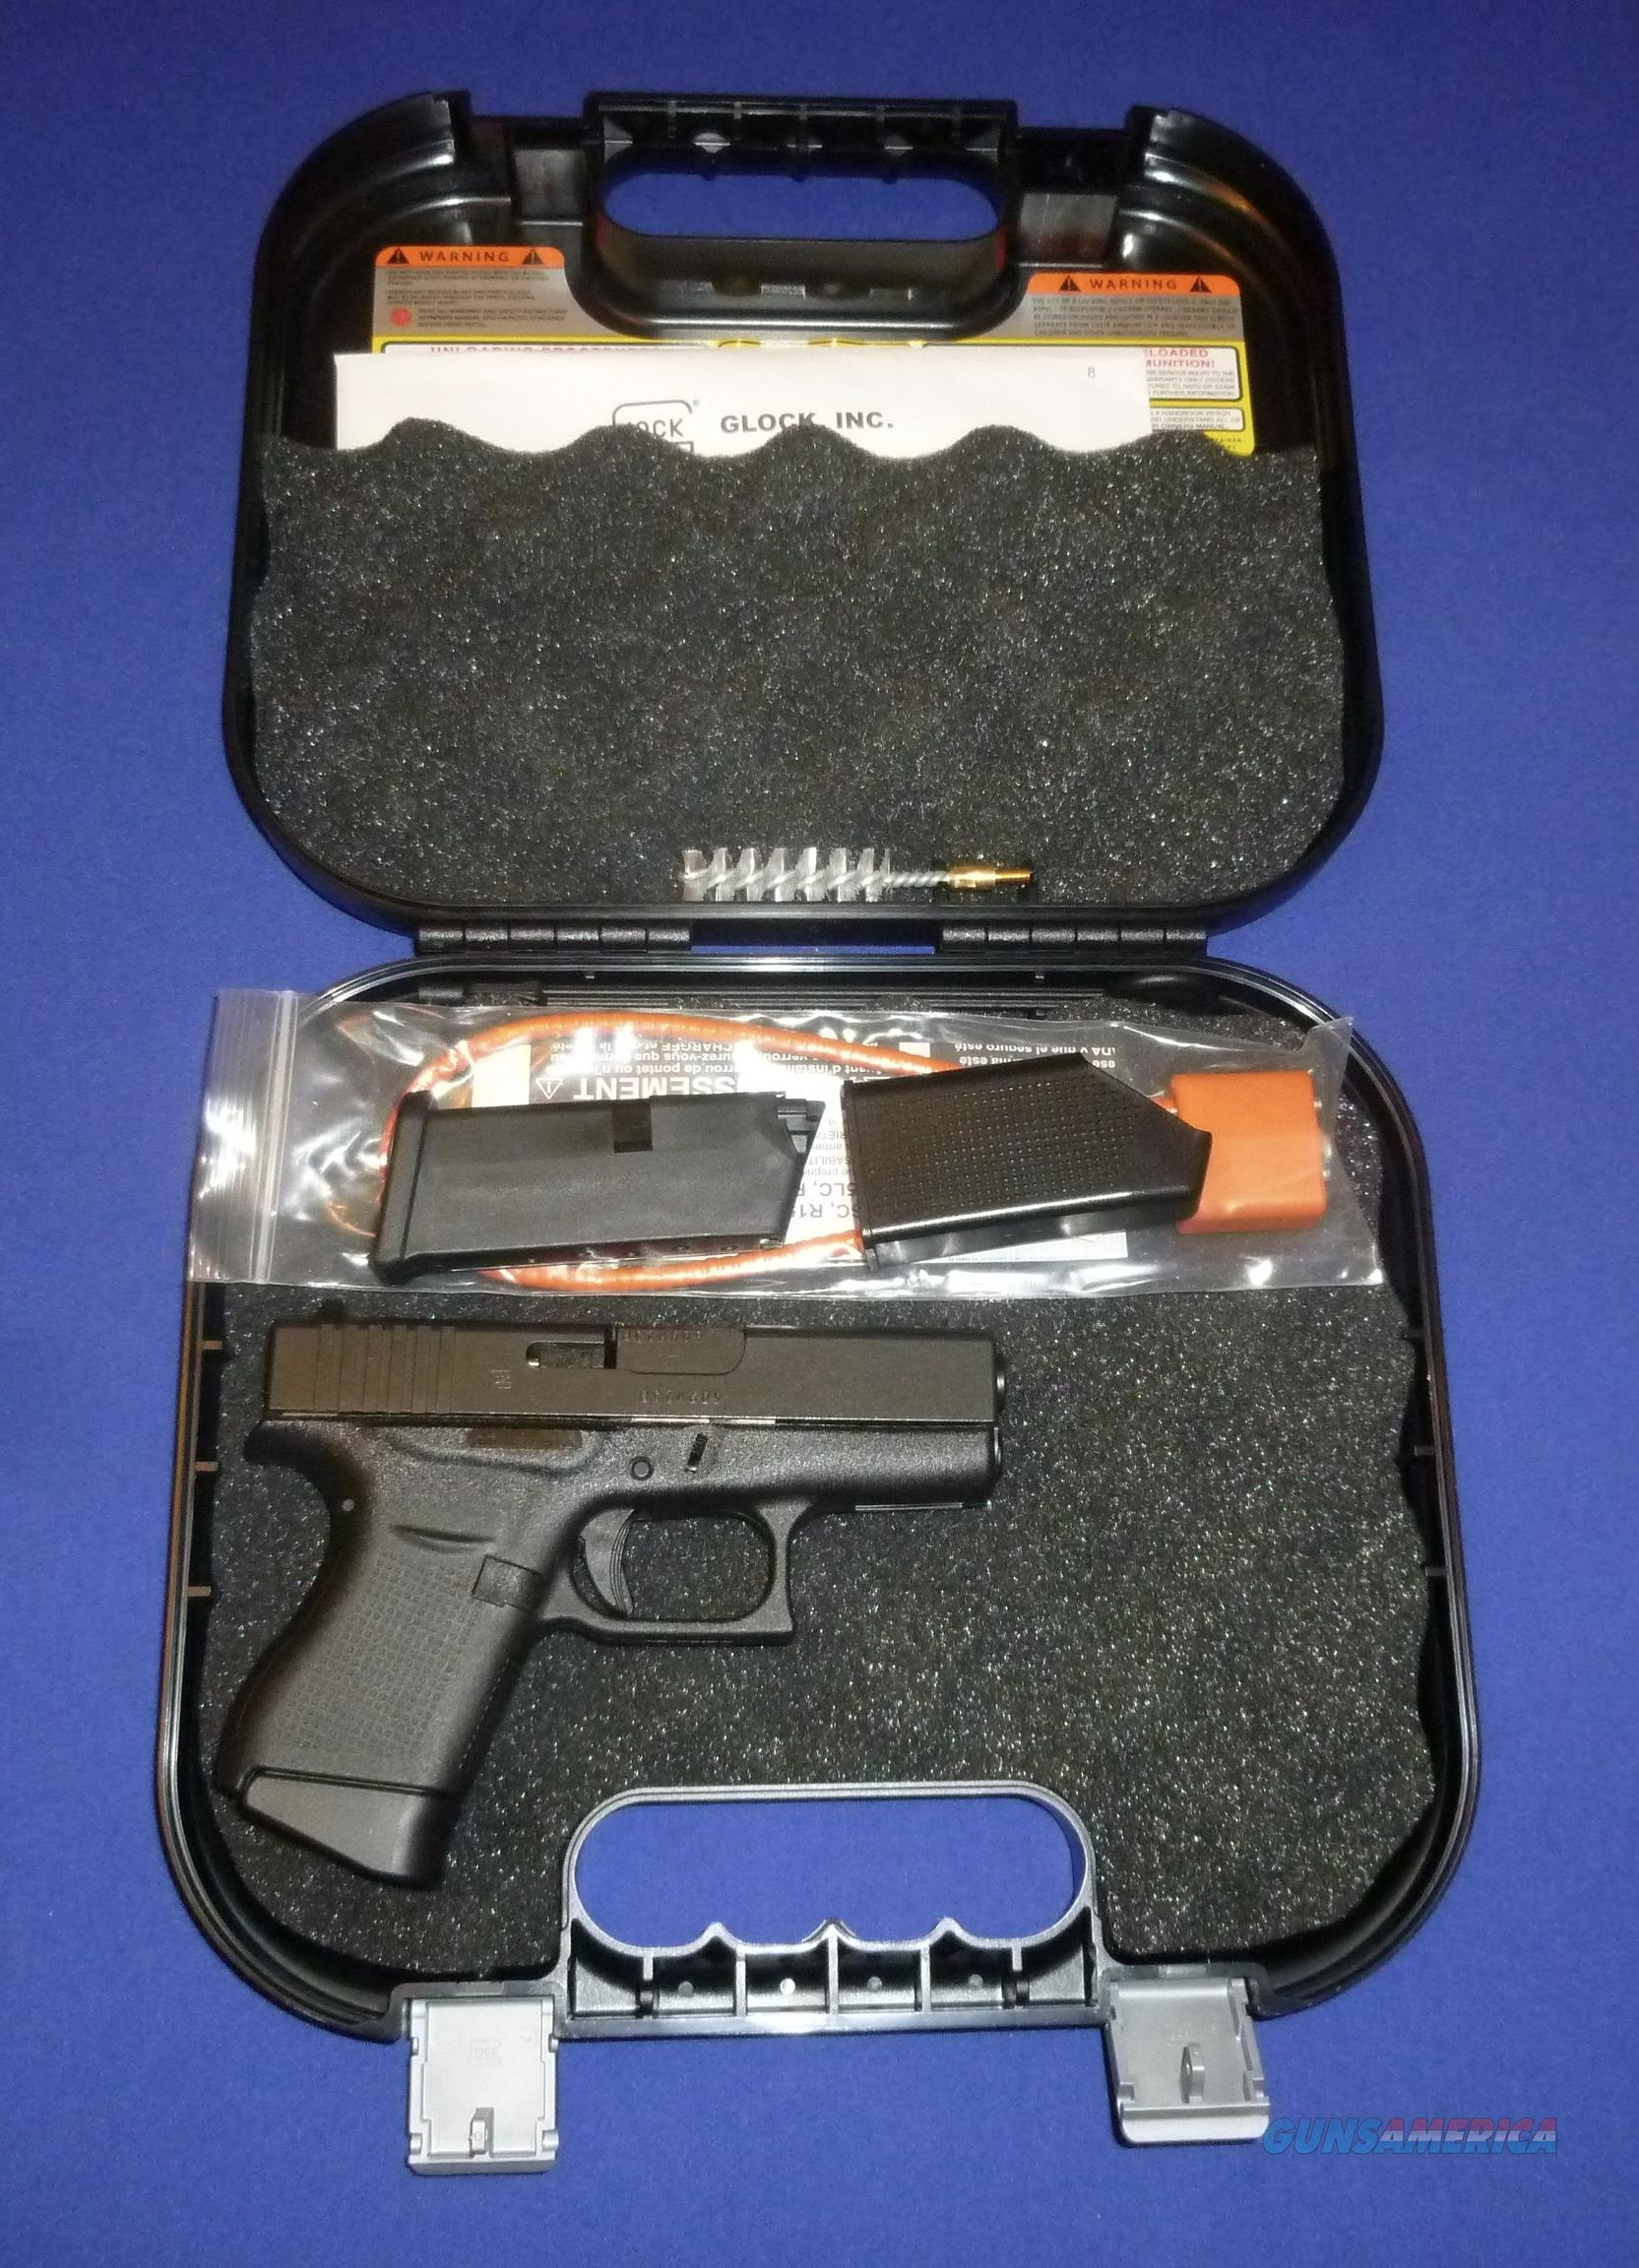 SALE PRICED! GLOCK 43 COMPACT 9MM PISTOL NEW!  Guns > Pistols > Glock Pistols > 43